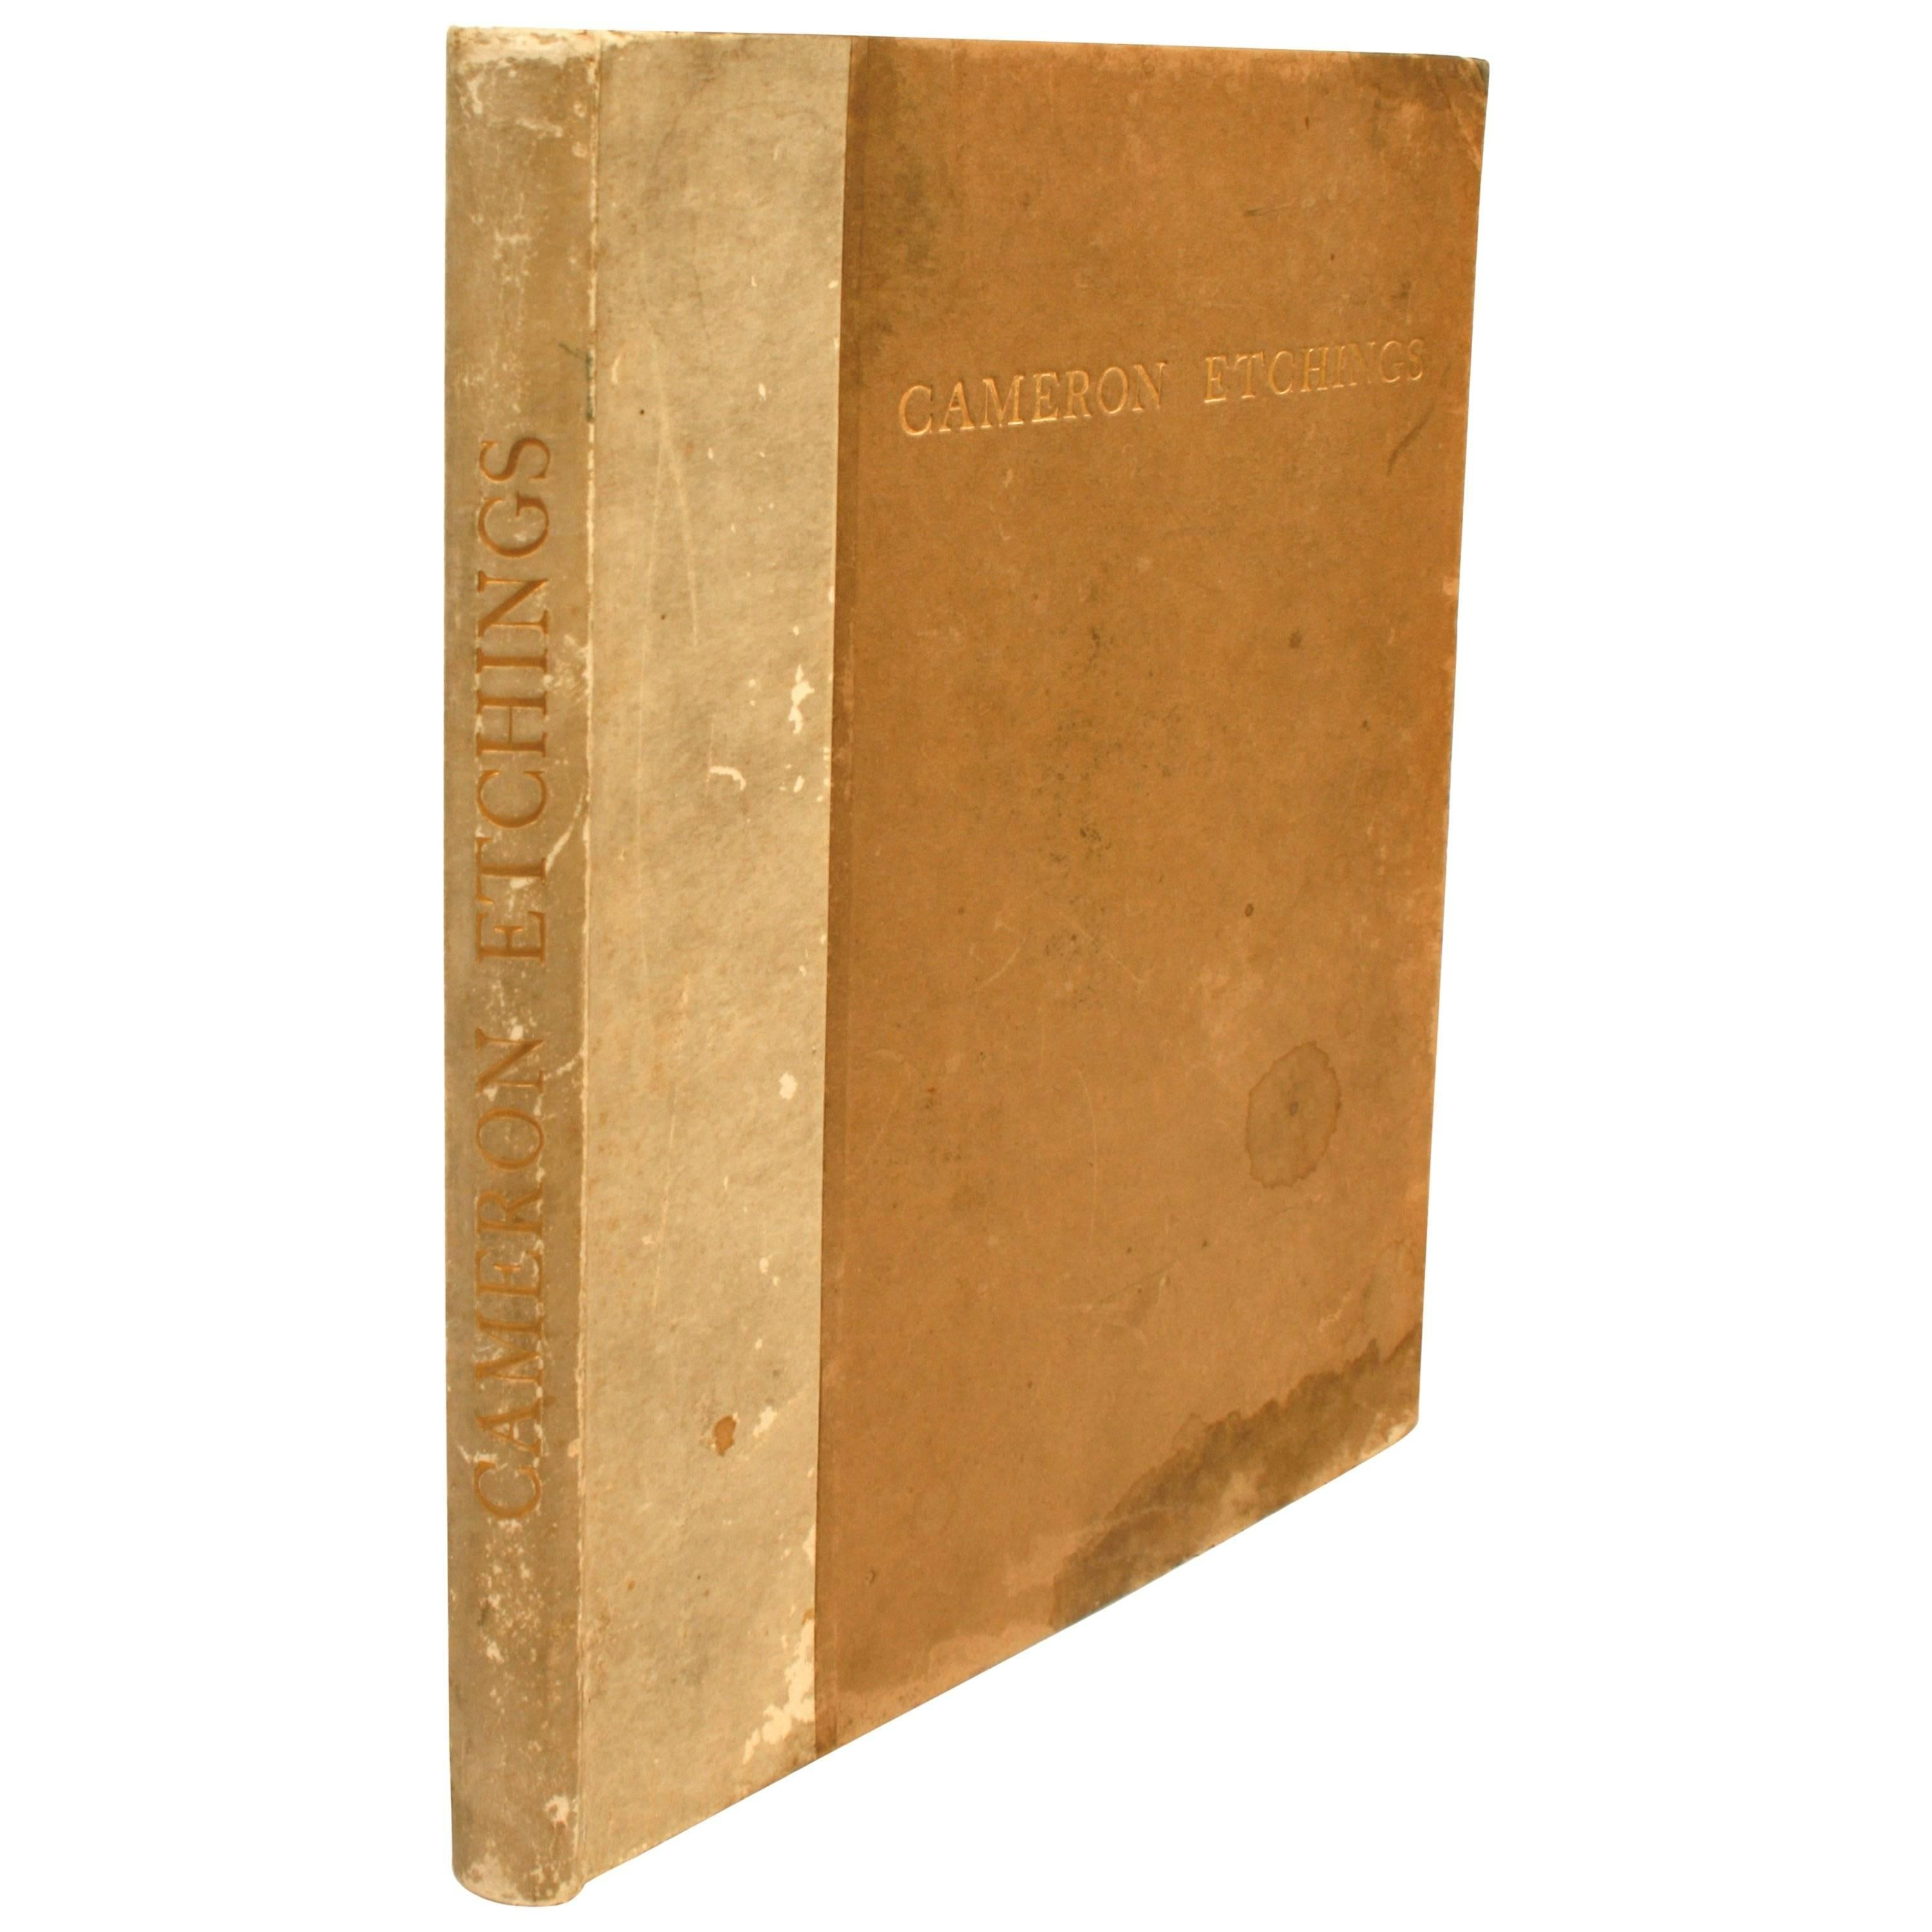 Etchings of D.Y. Cameron and a Catalogue of His Etched Work First Edition